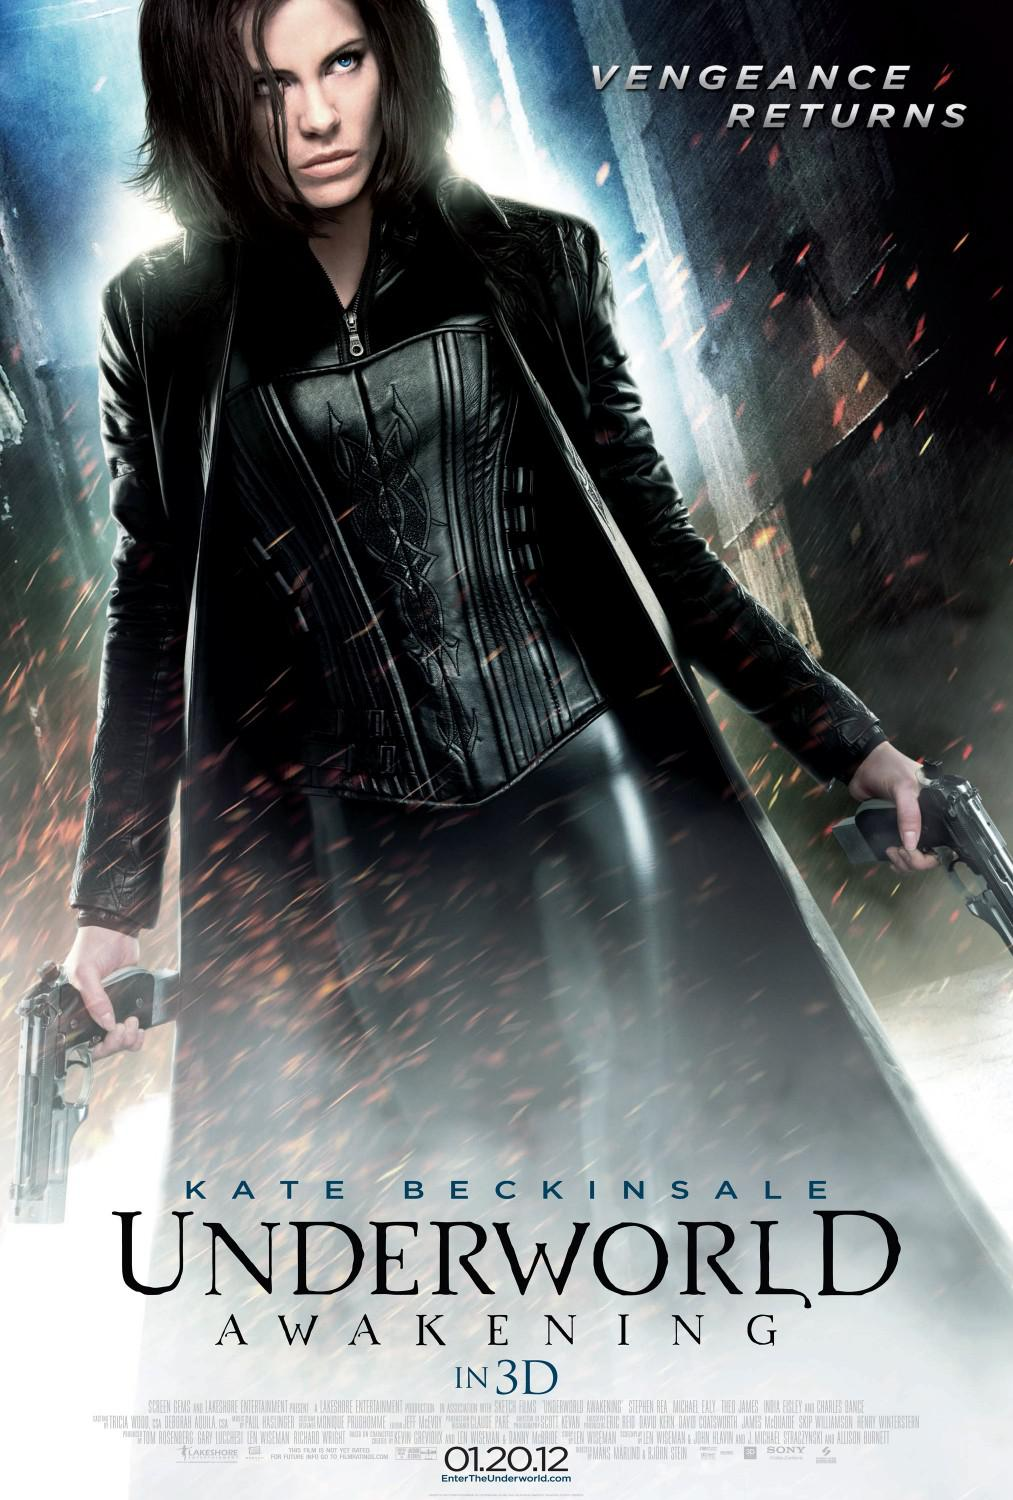 Underworld 4 - Awakening - Vengeance Returns - Kate Beckinsale